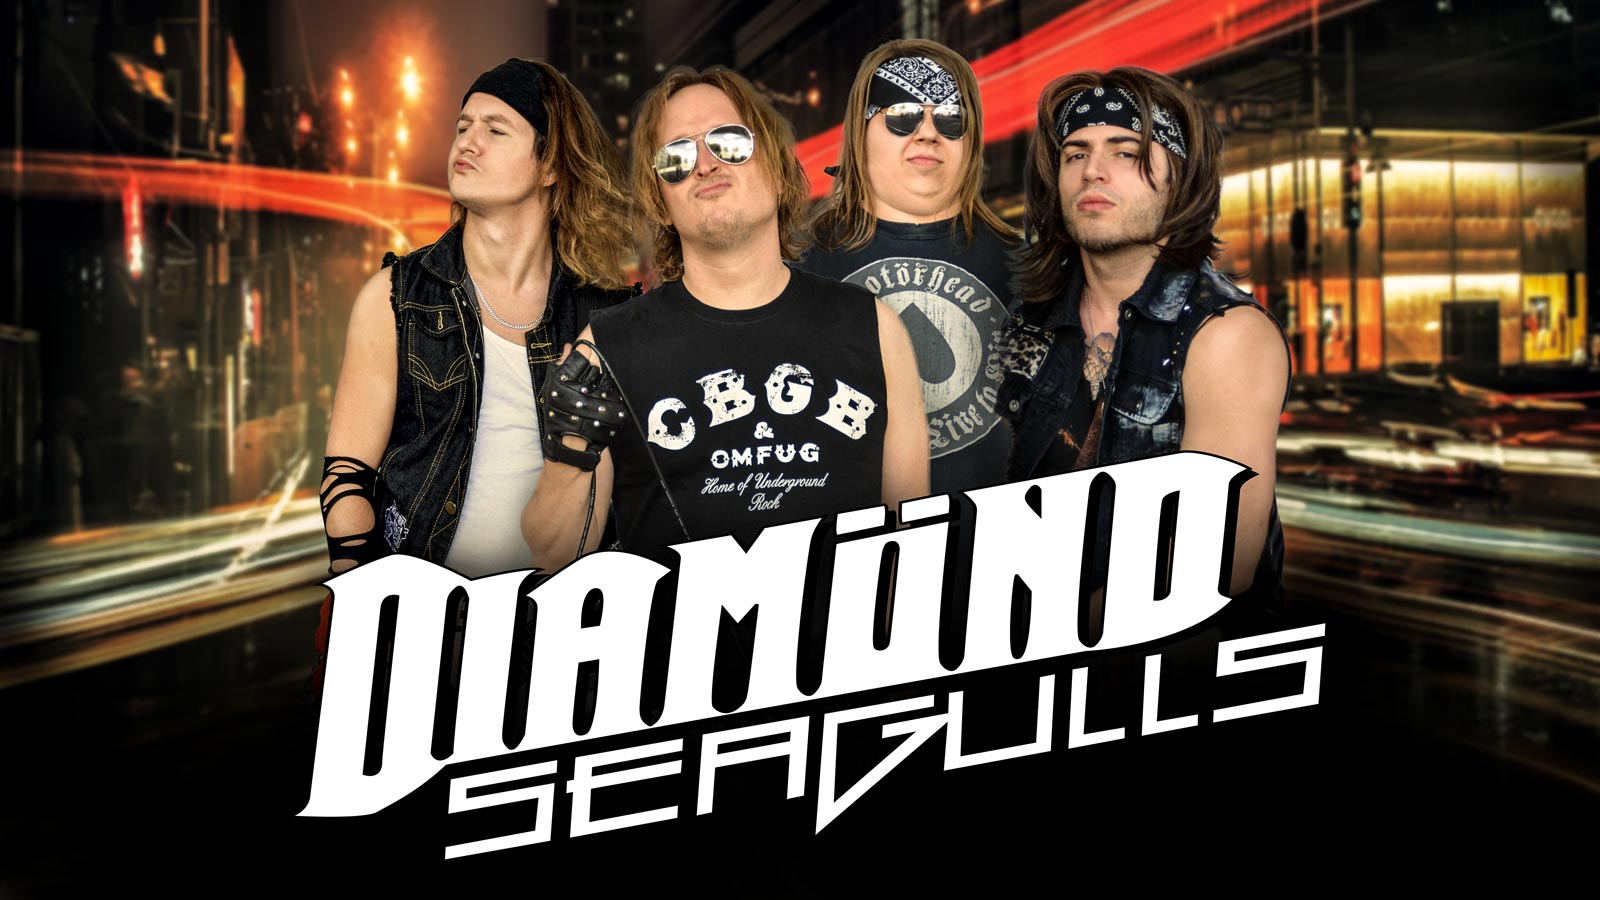 Diamond Seagulls Glamrock Band